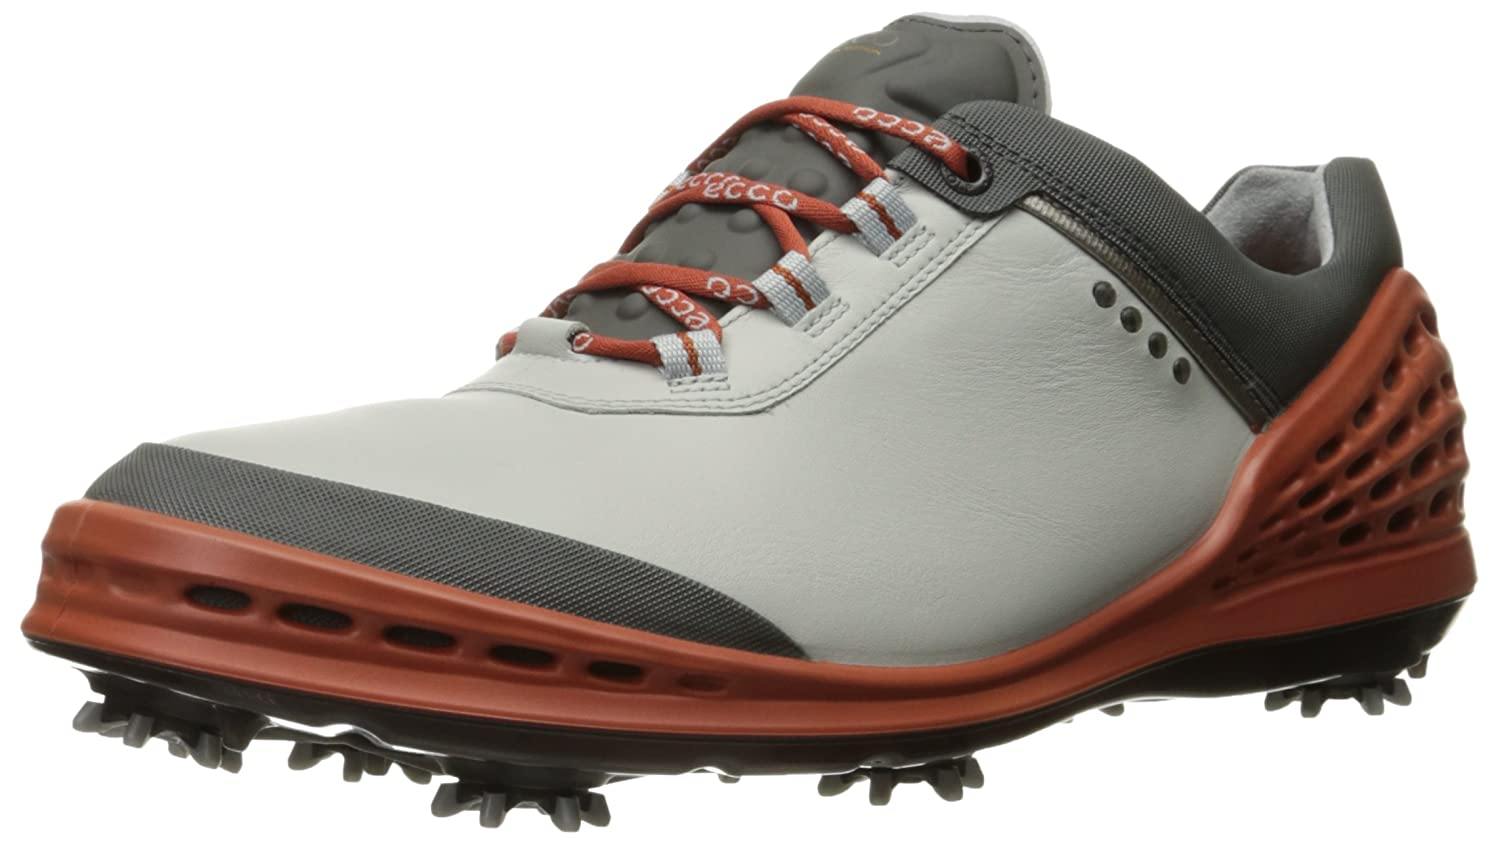 [エコー] ゴルフシューズ ECCO GOLF CAGE 132504 B017KXG9ZO 47 M EU / 13-13.5 D(M) US Concrete/Orange